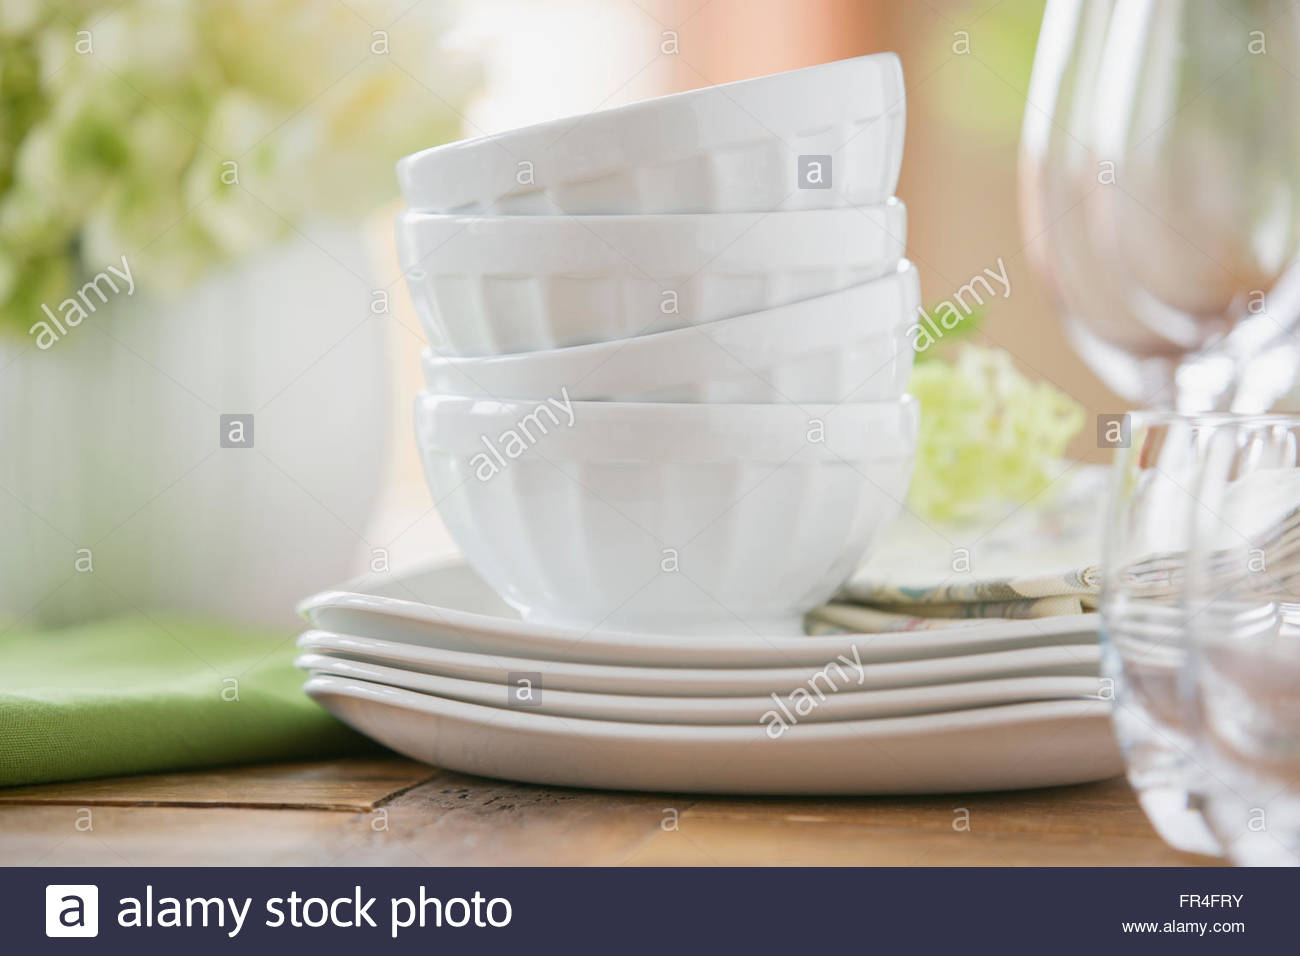 Stack of gleaming white bowls and plates. - Stock Image